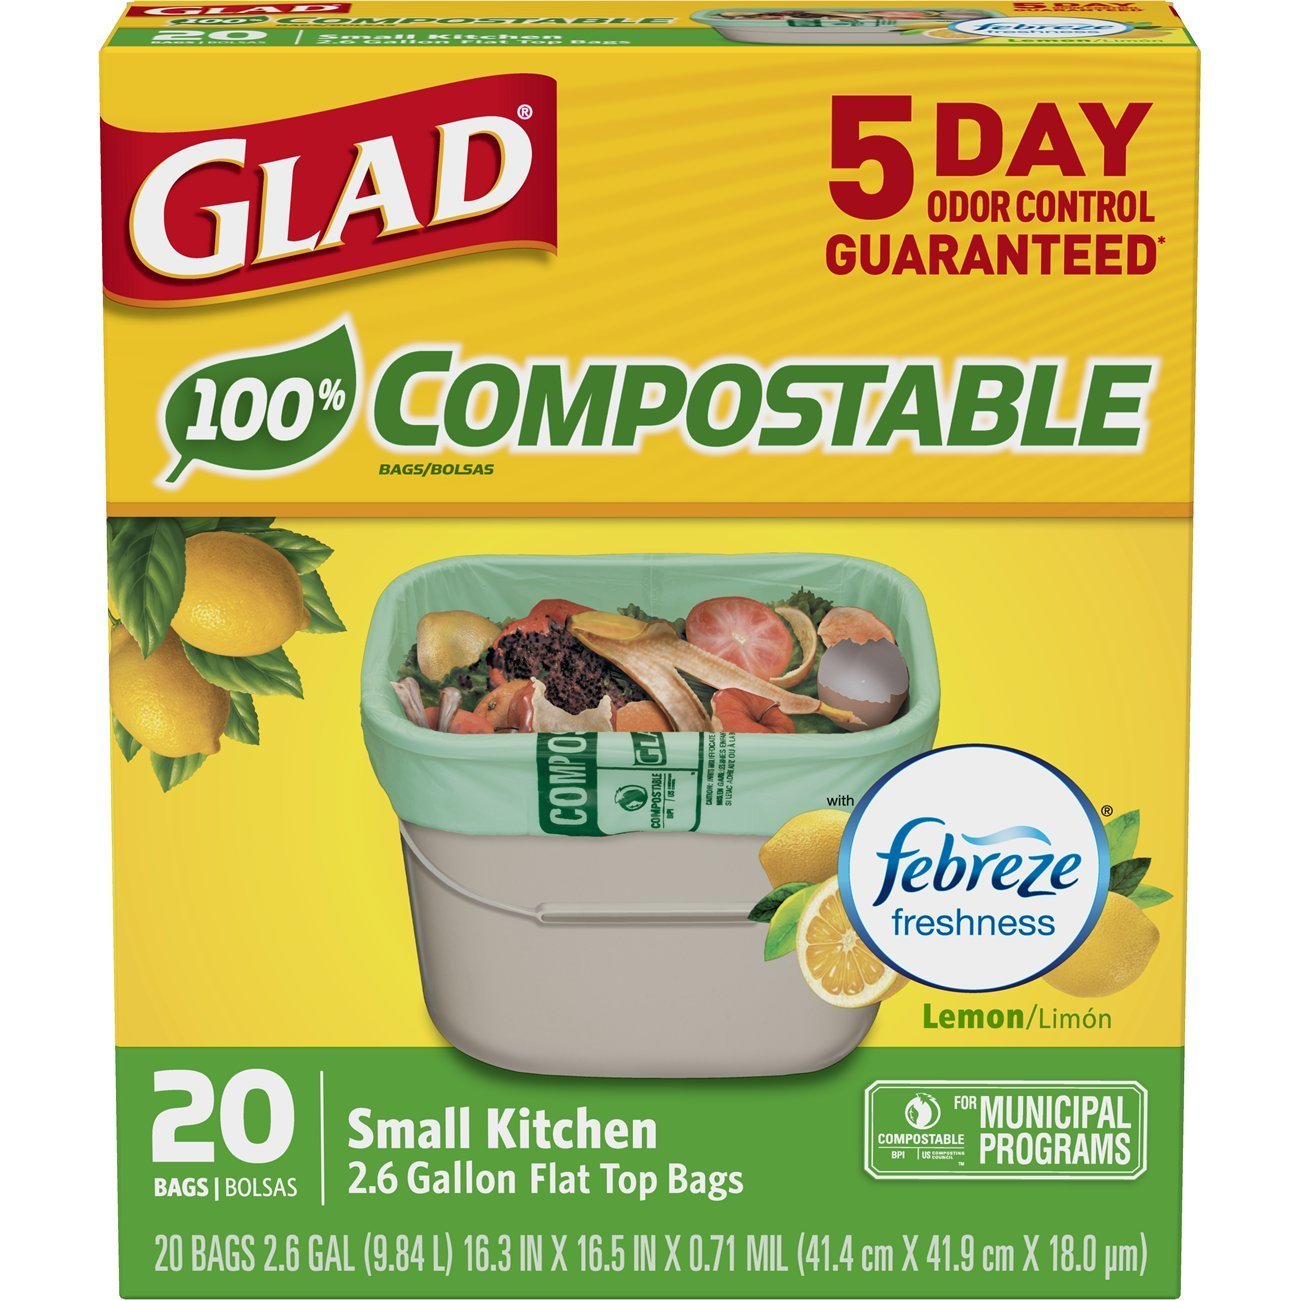 Glad Kitchen Compost Bags - OdorShield 2.6 Gallon 100% Compostable Green Trash Bag, Febreze Fresh Lemon - 20 Count